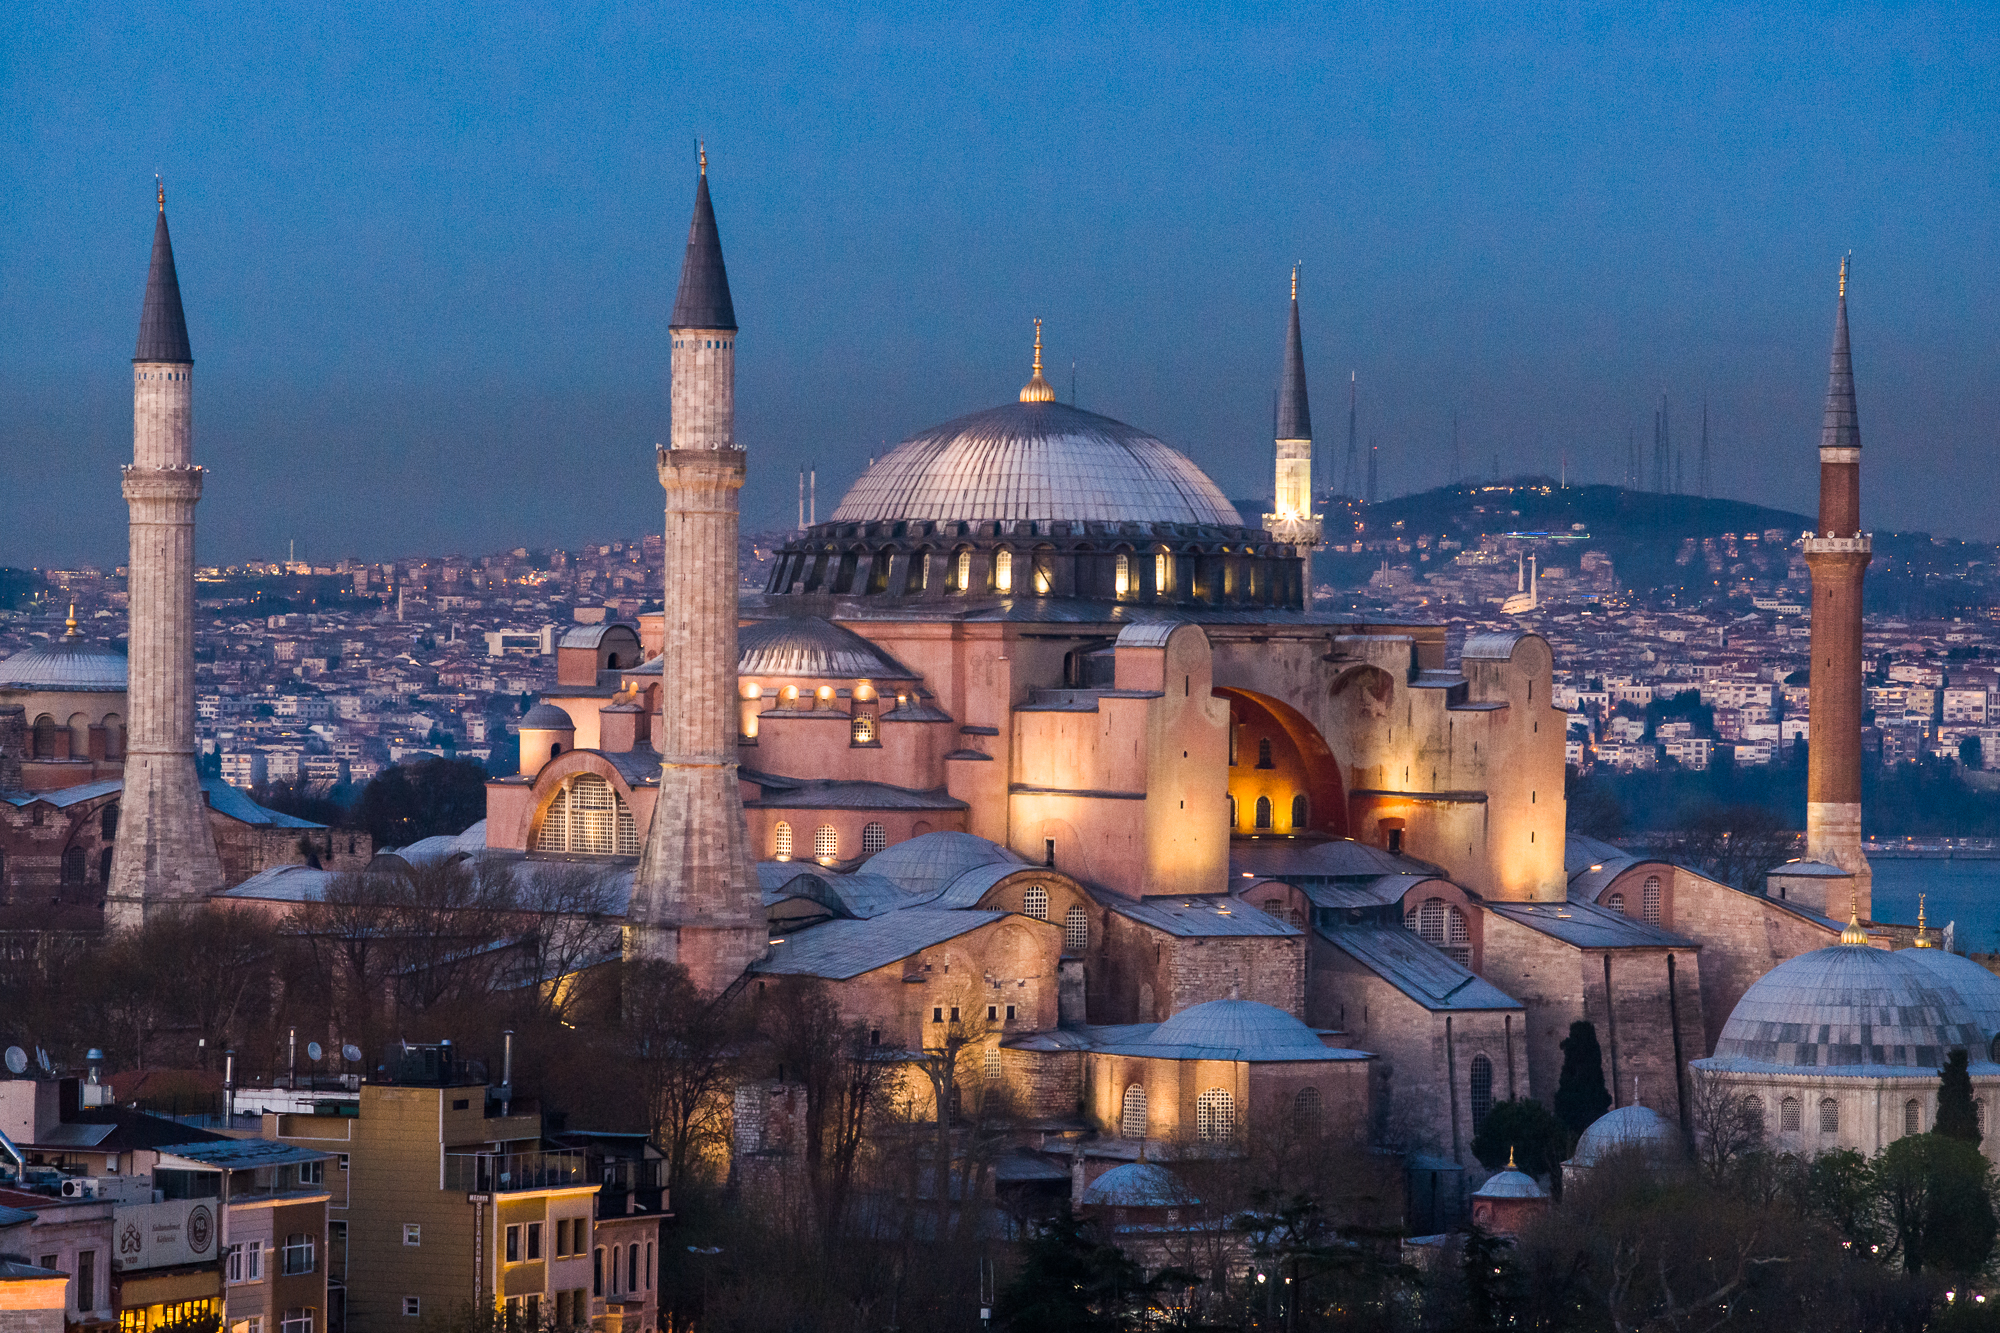 The Hagia Sophia, built by Emperor Justinian in 537 AD,was a church for 900 years as well as a mosque for 500 years. Since 1935 it is a national museum.